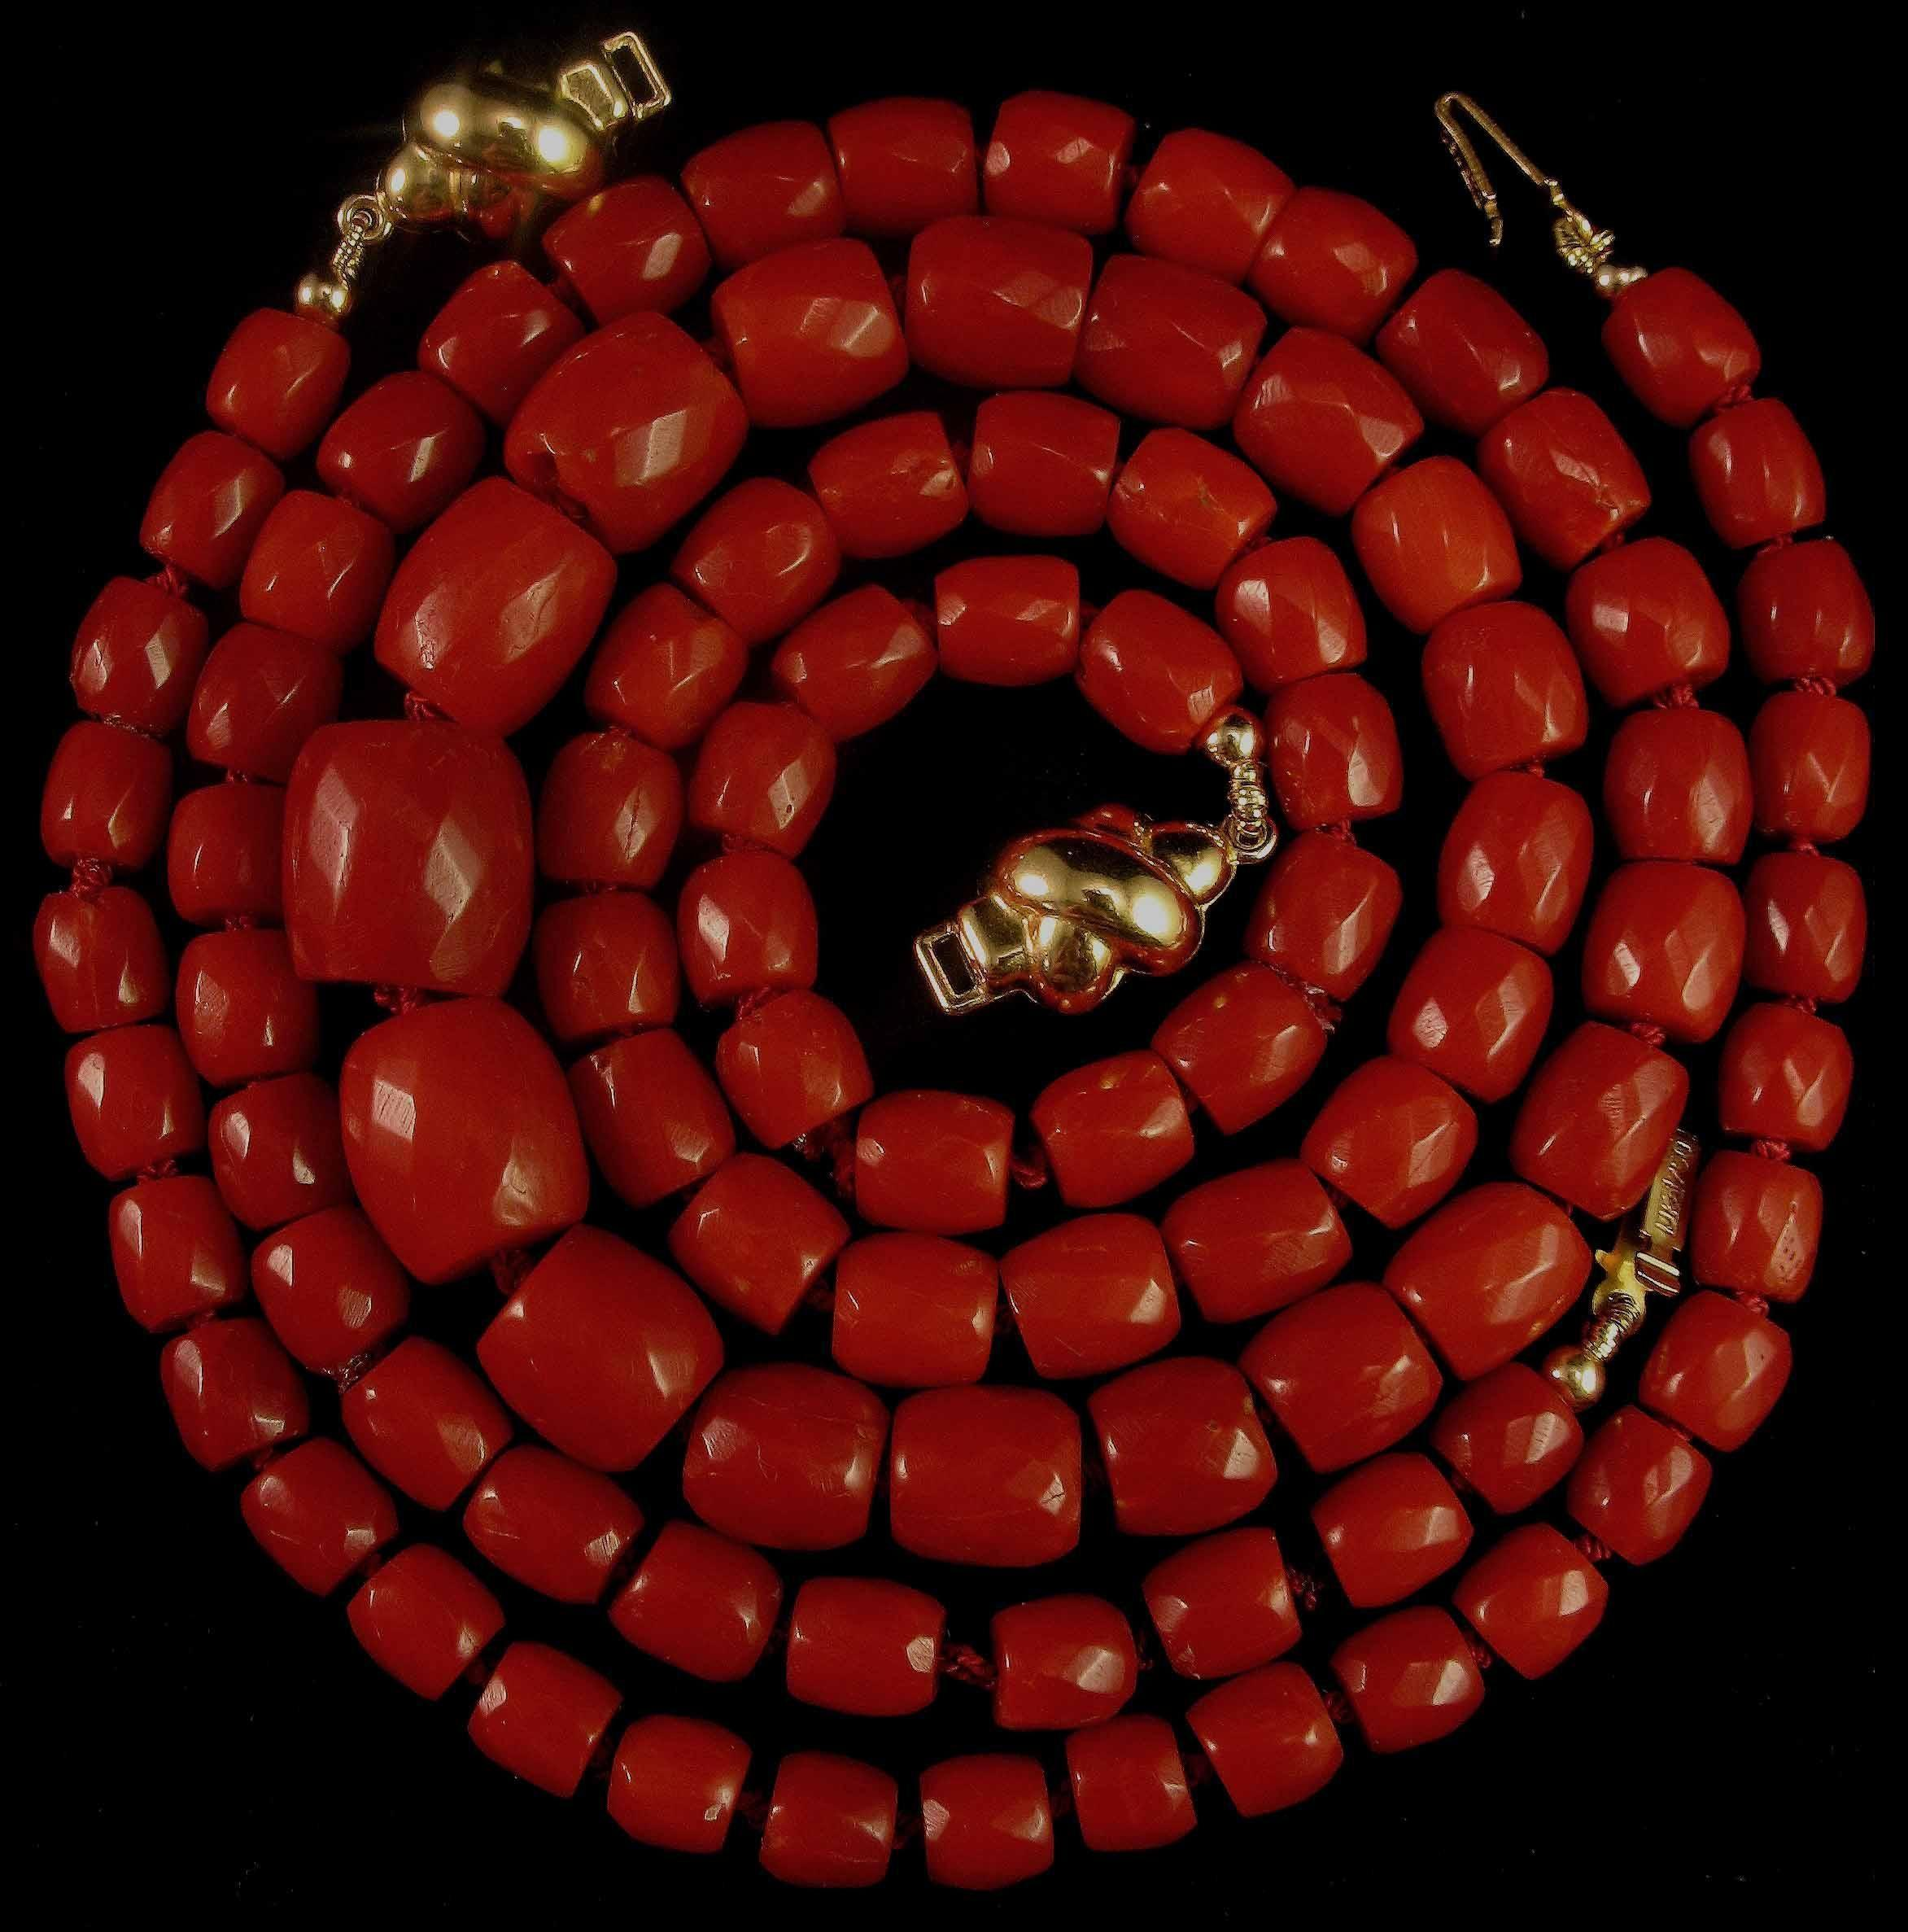 Magnificent 18K Oxblood Red Coral Faceted Bead Necklace & Bracelet Suite - 42.3 grams